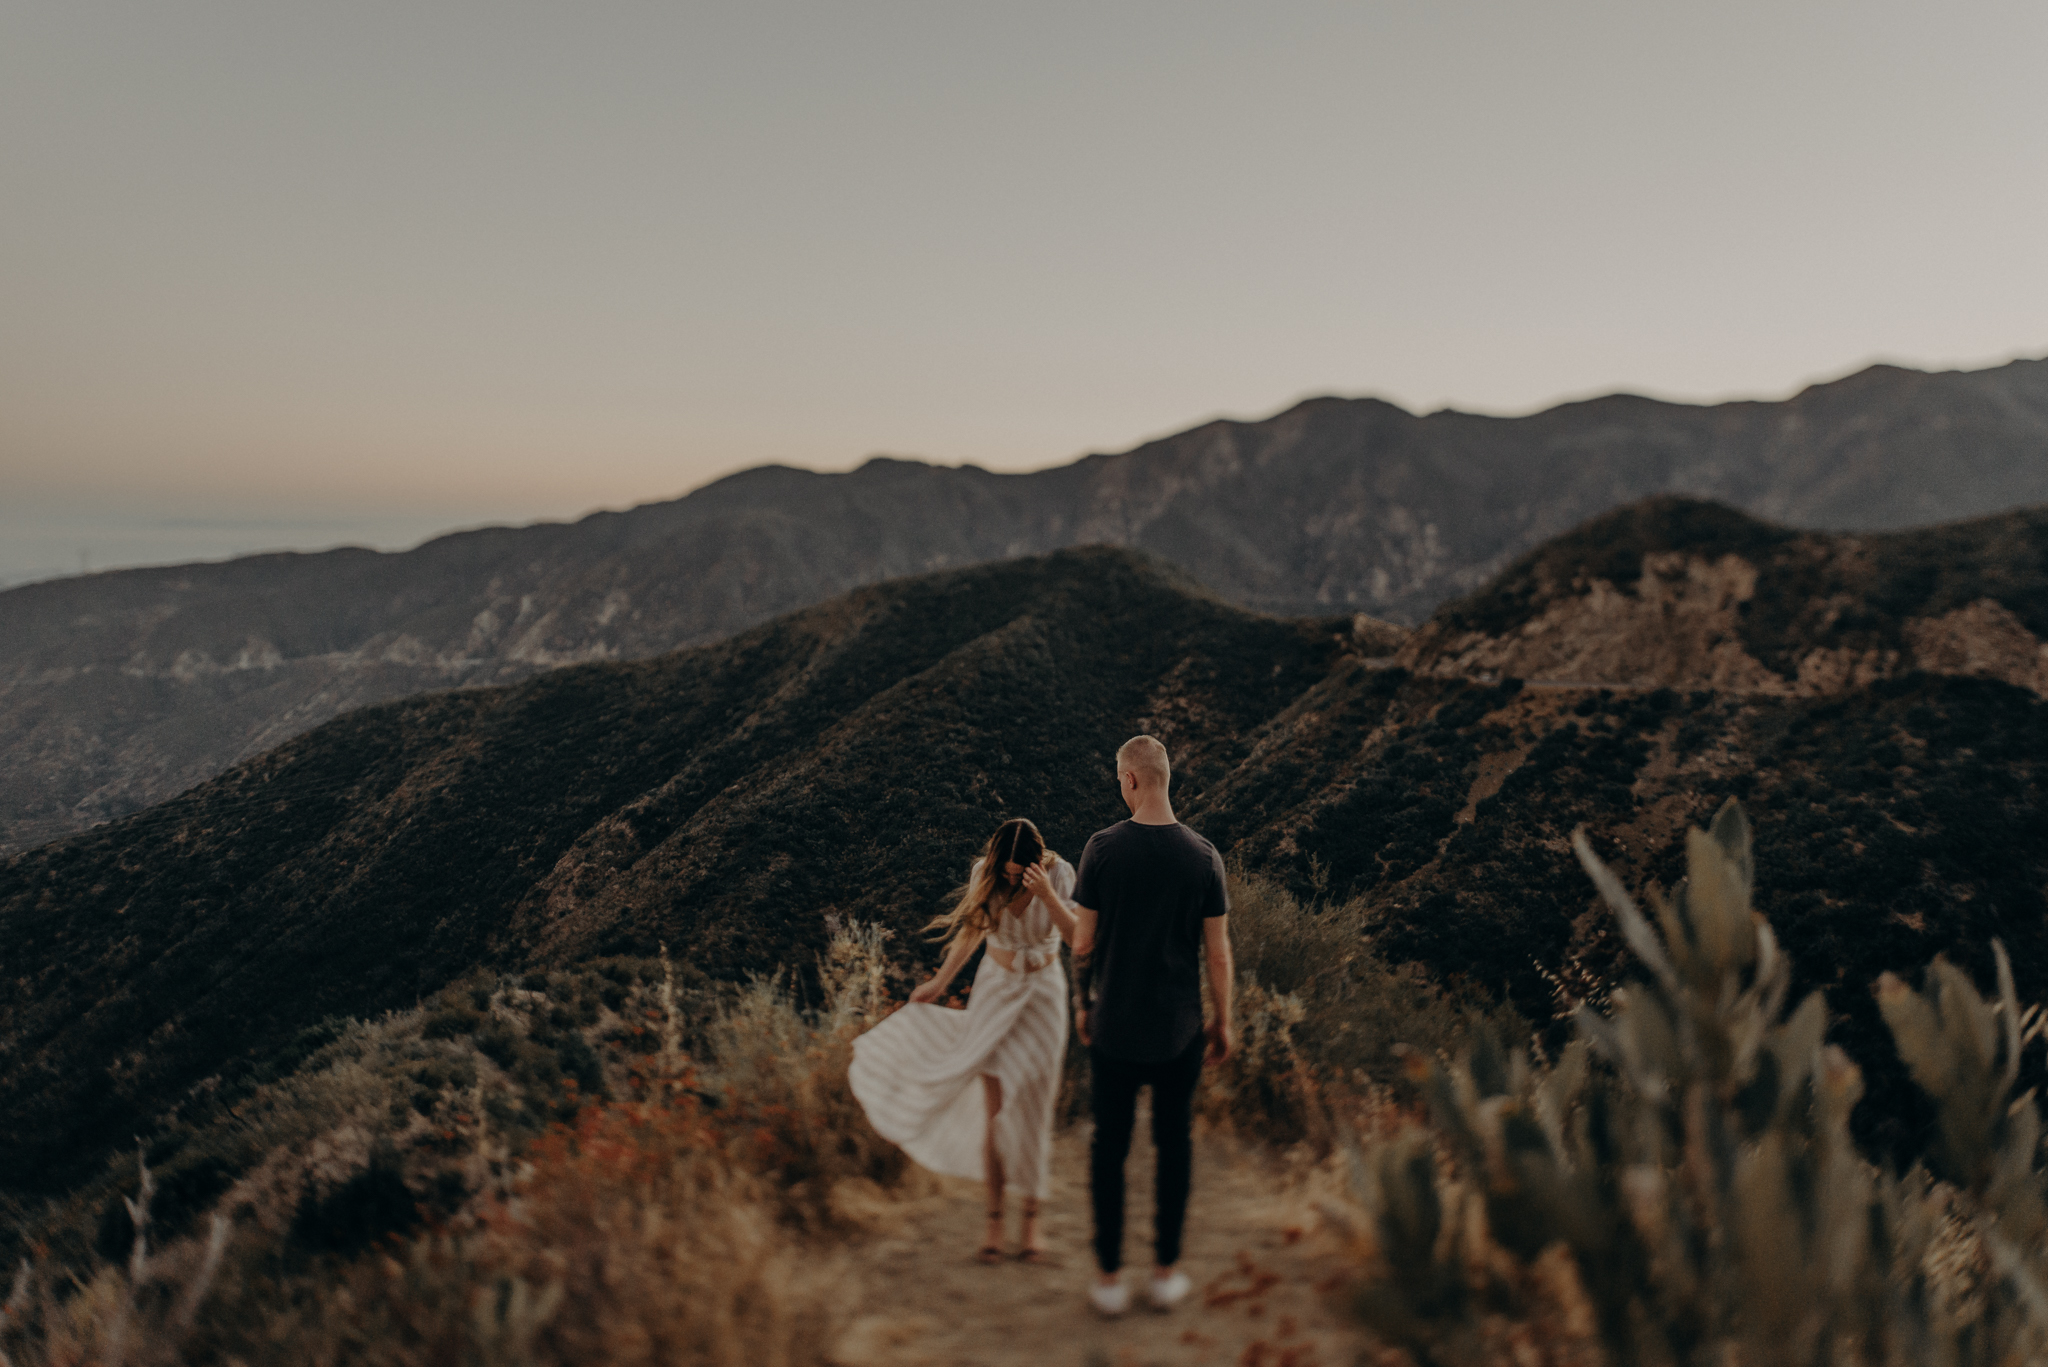 Isaiah + Taylor Photography - Los Angeles Forest Engagement Session - Laid back wedding photographer-038.jpg